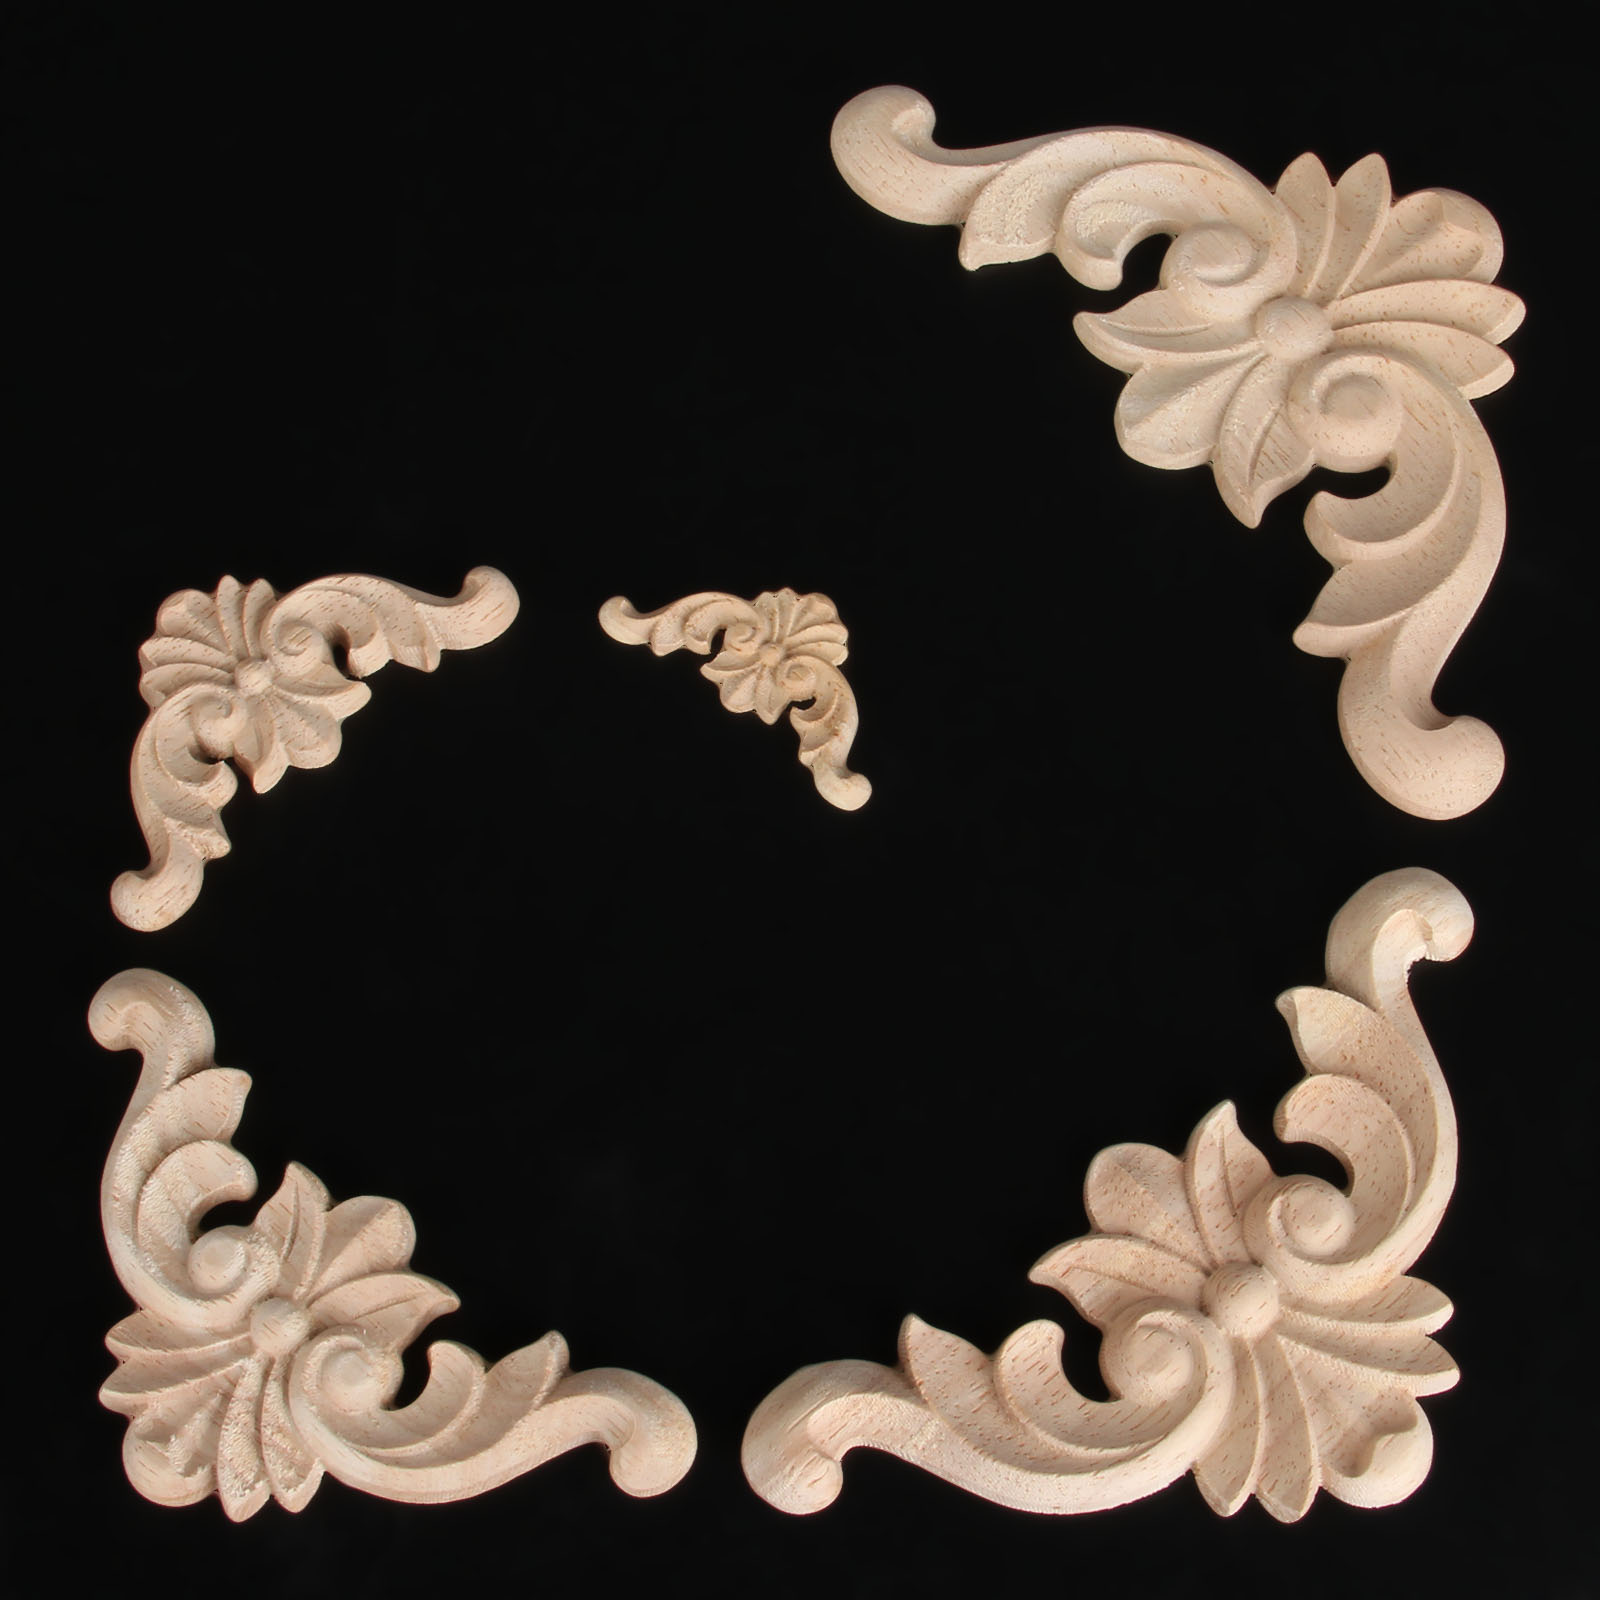 4Pc 4 6 8 10 12cm Woodcarving Decal Corner Wood Carved Furniture Decorative Figurine Wood Miniatures Home Decor for Cabinet Door in Figurines Miniatures from Home Garden